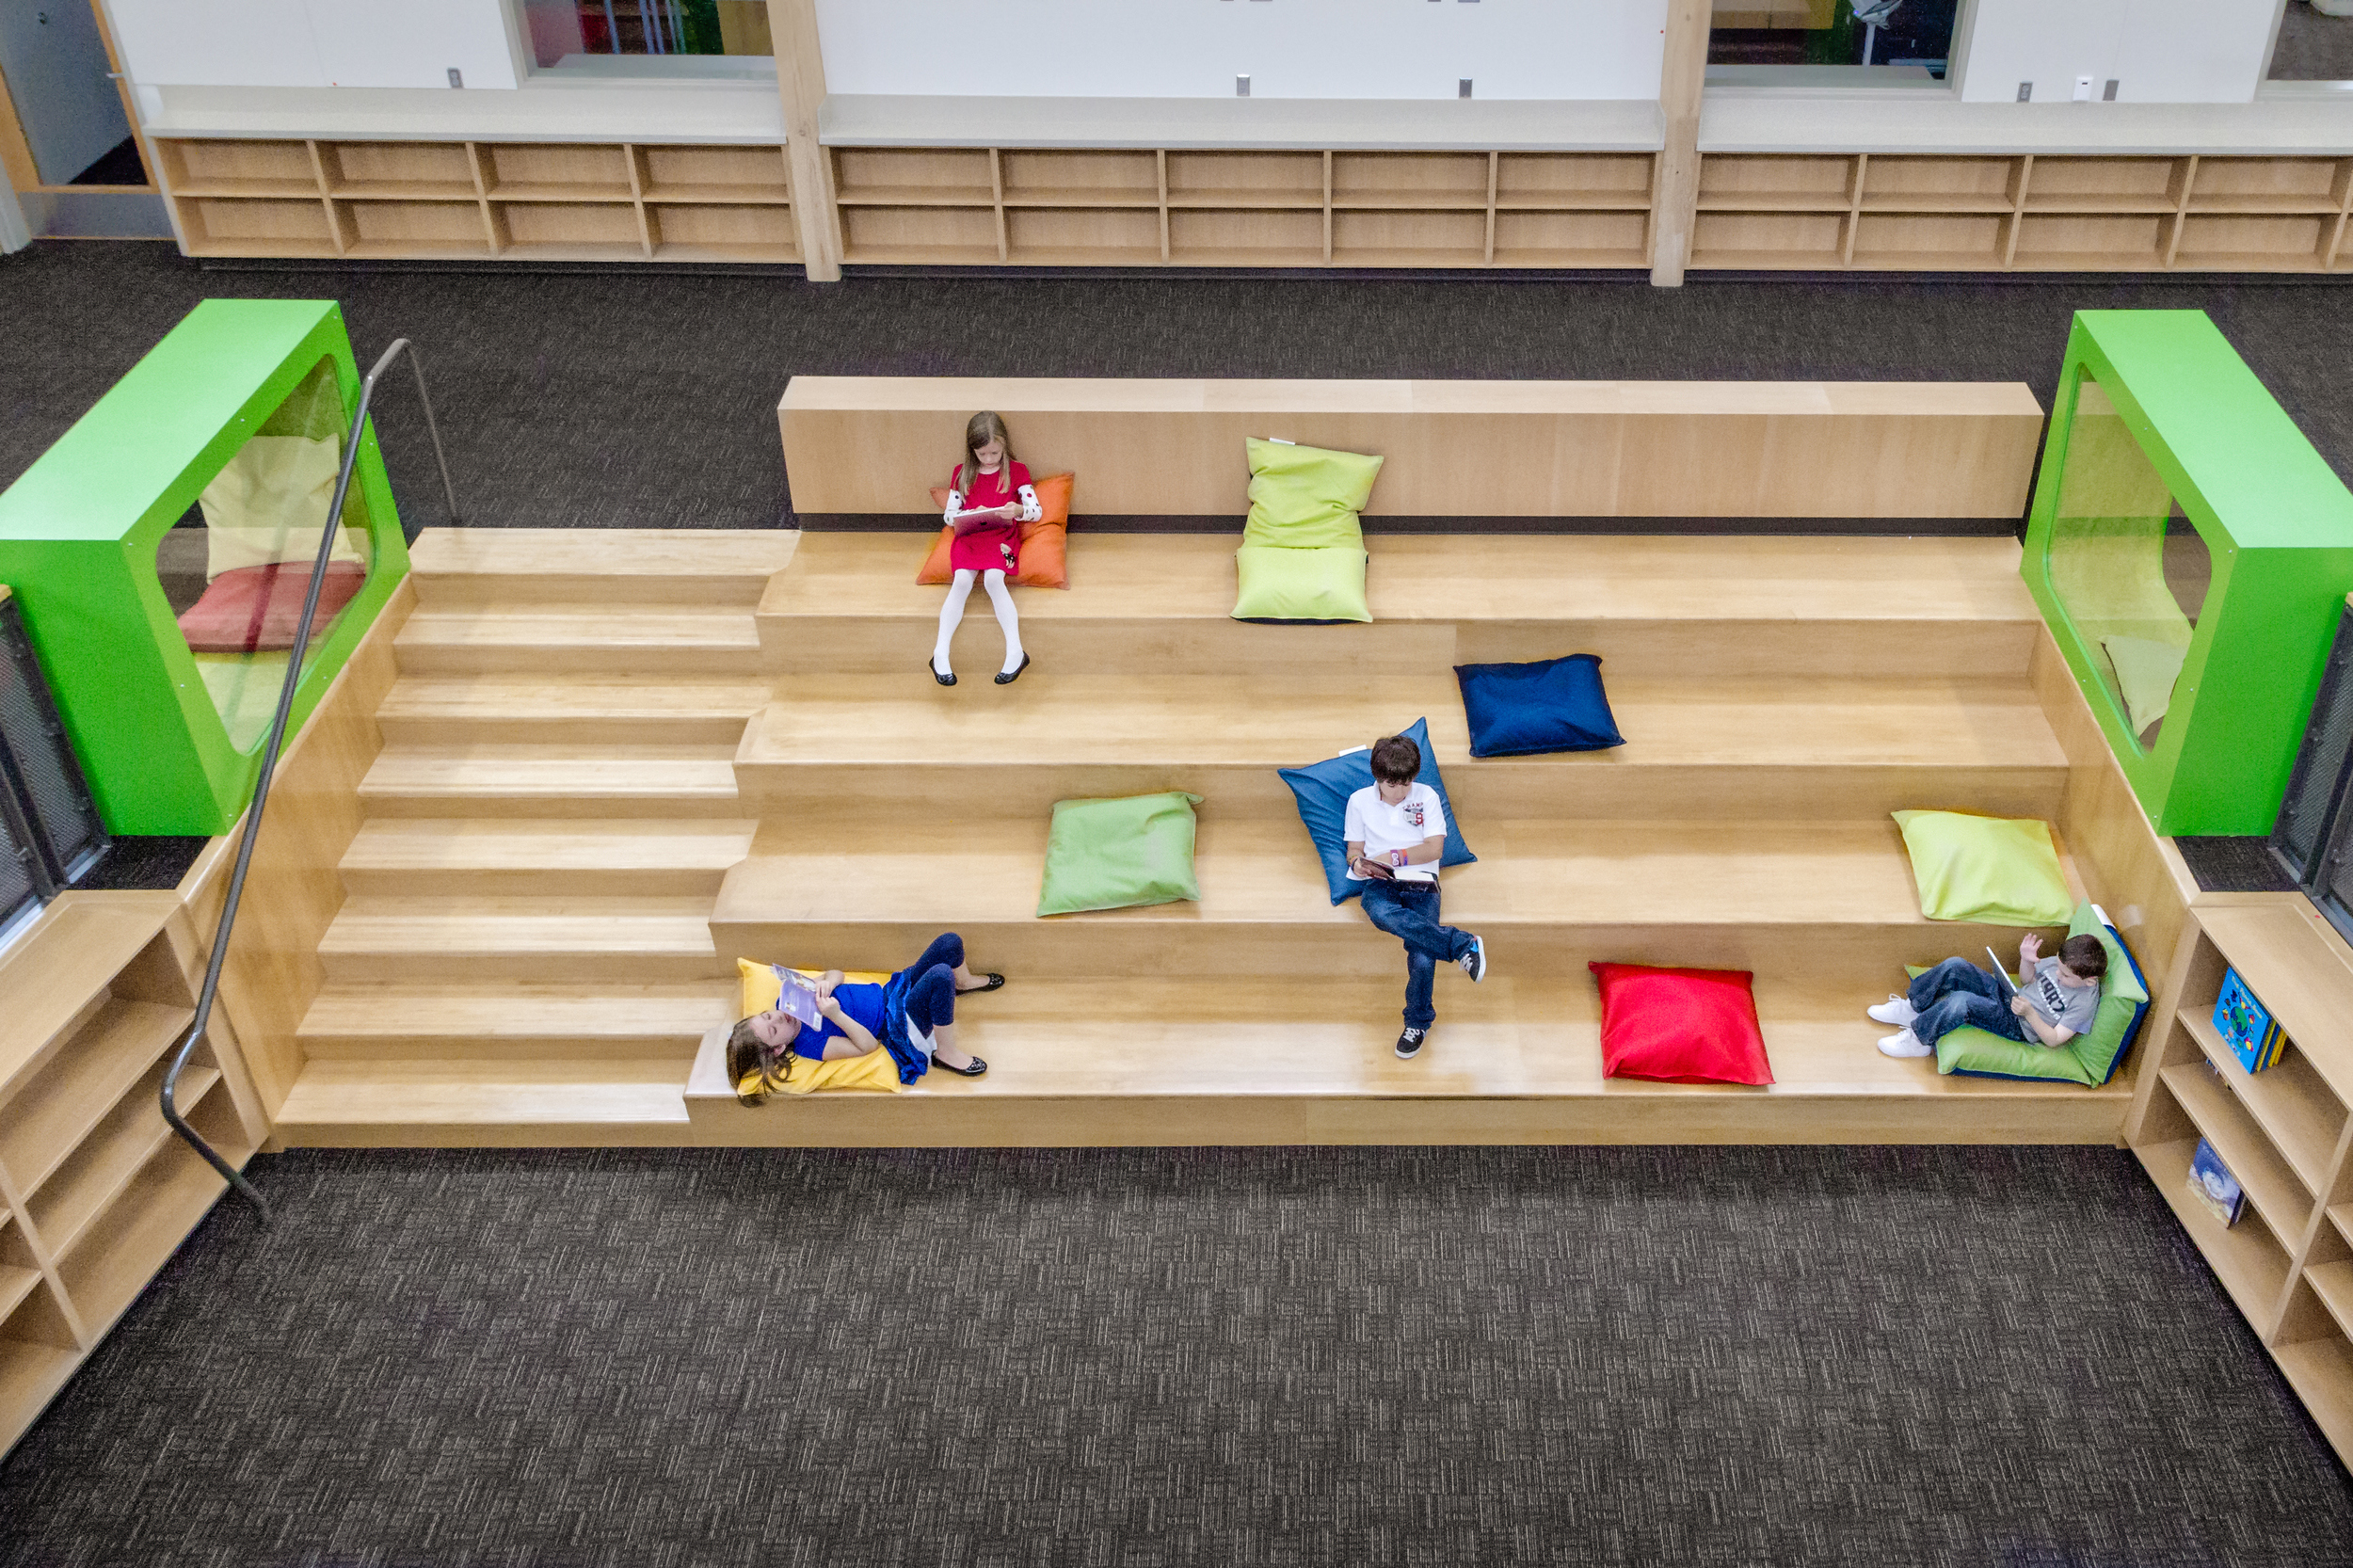 TCPS_Library-Amphitheater-overhead-Parallel-Photography-2012B.jpg